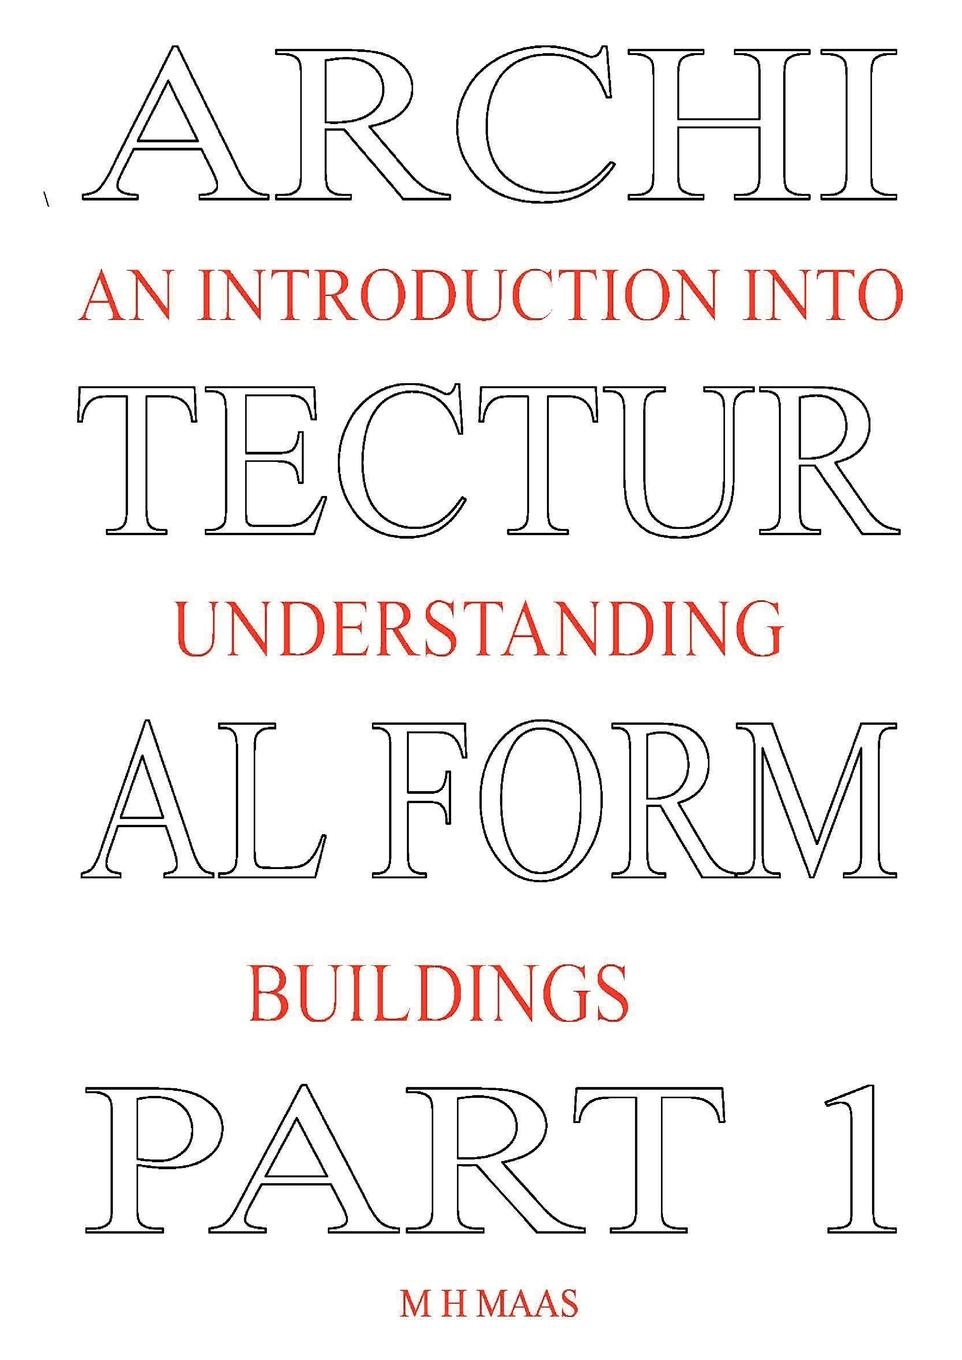 Huub Maas Architectural Form Part 1 An introduction into understanding buildings stephen emmitt barry s introduction to construction of buildings